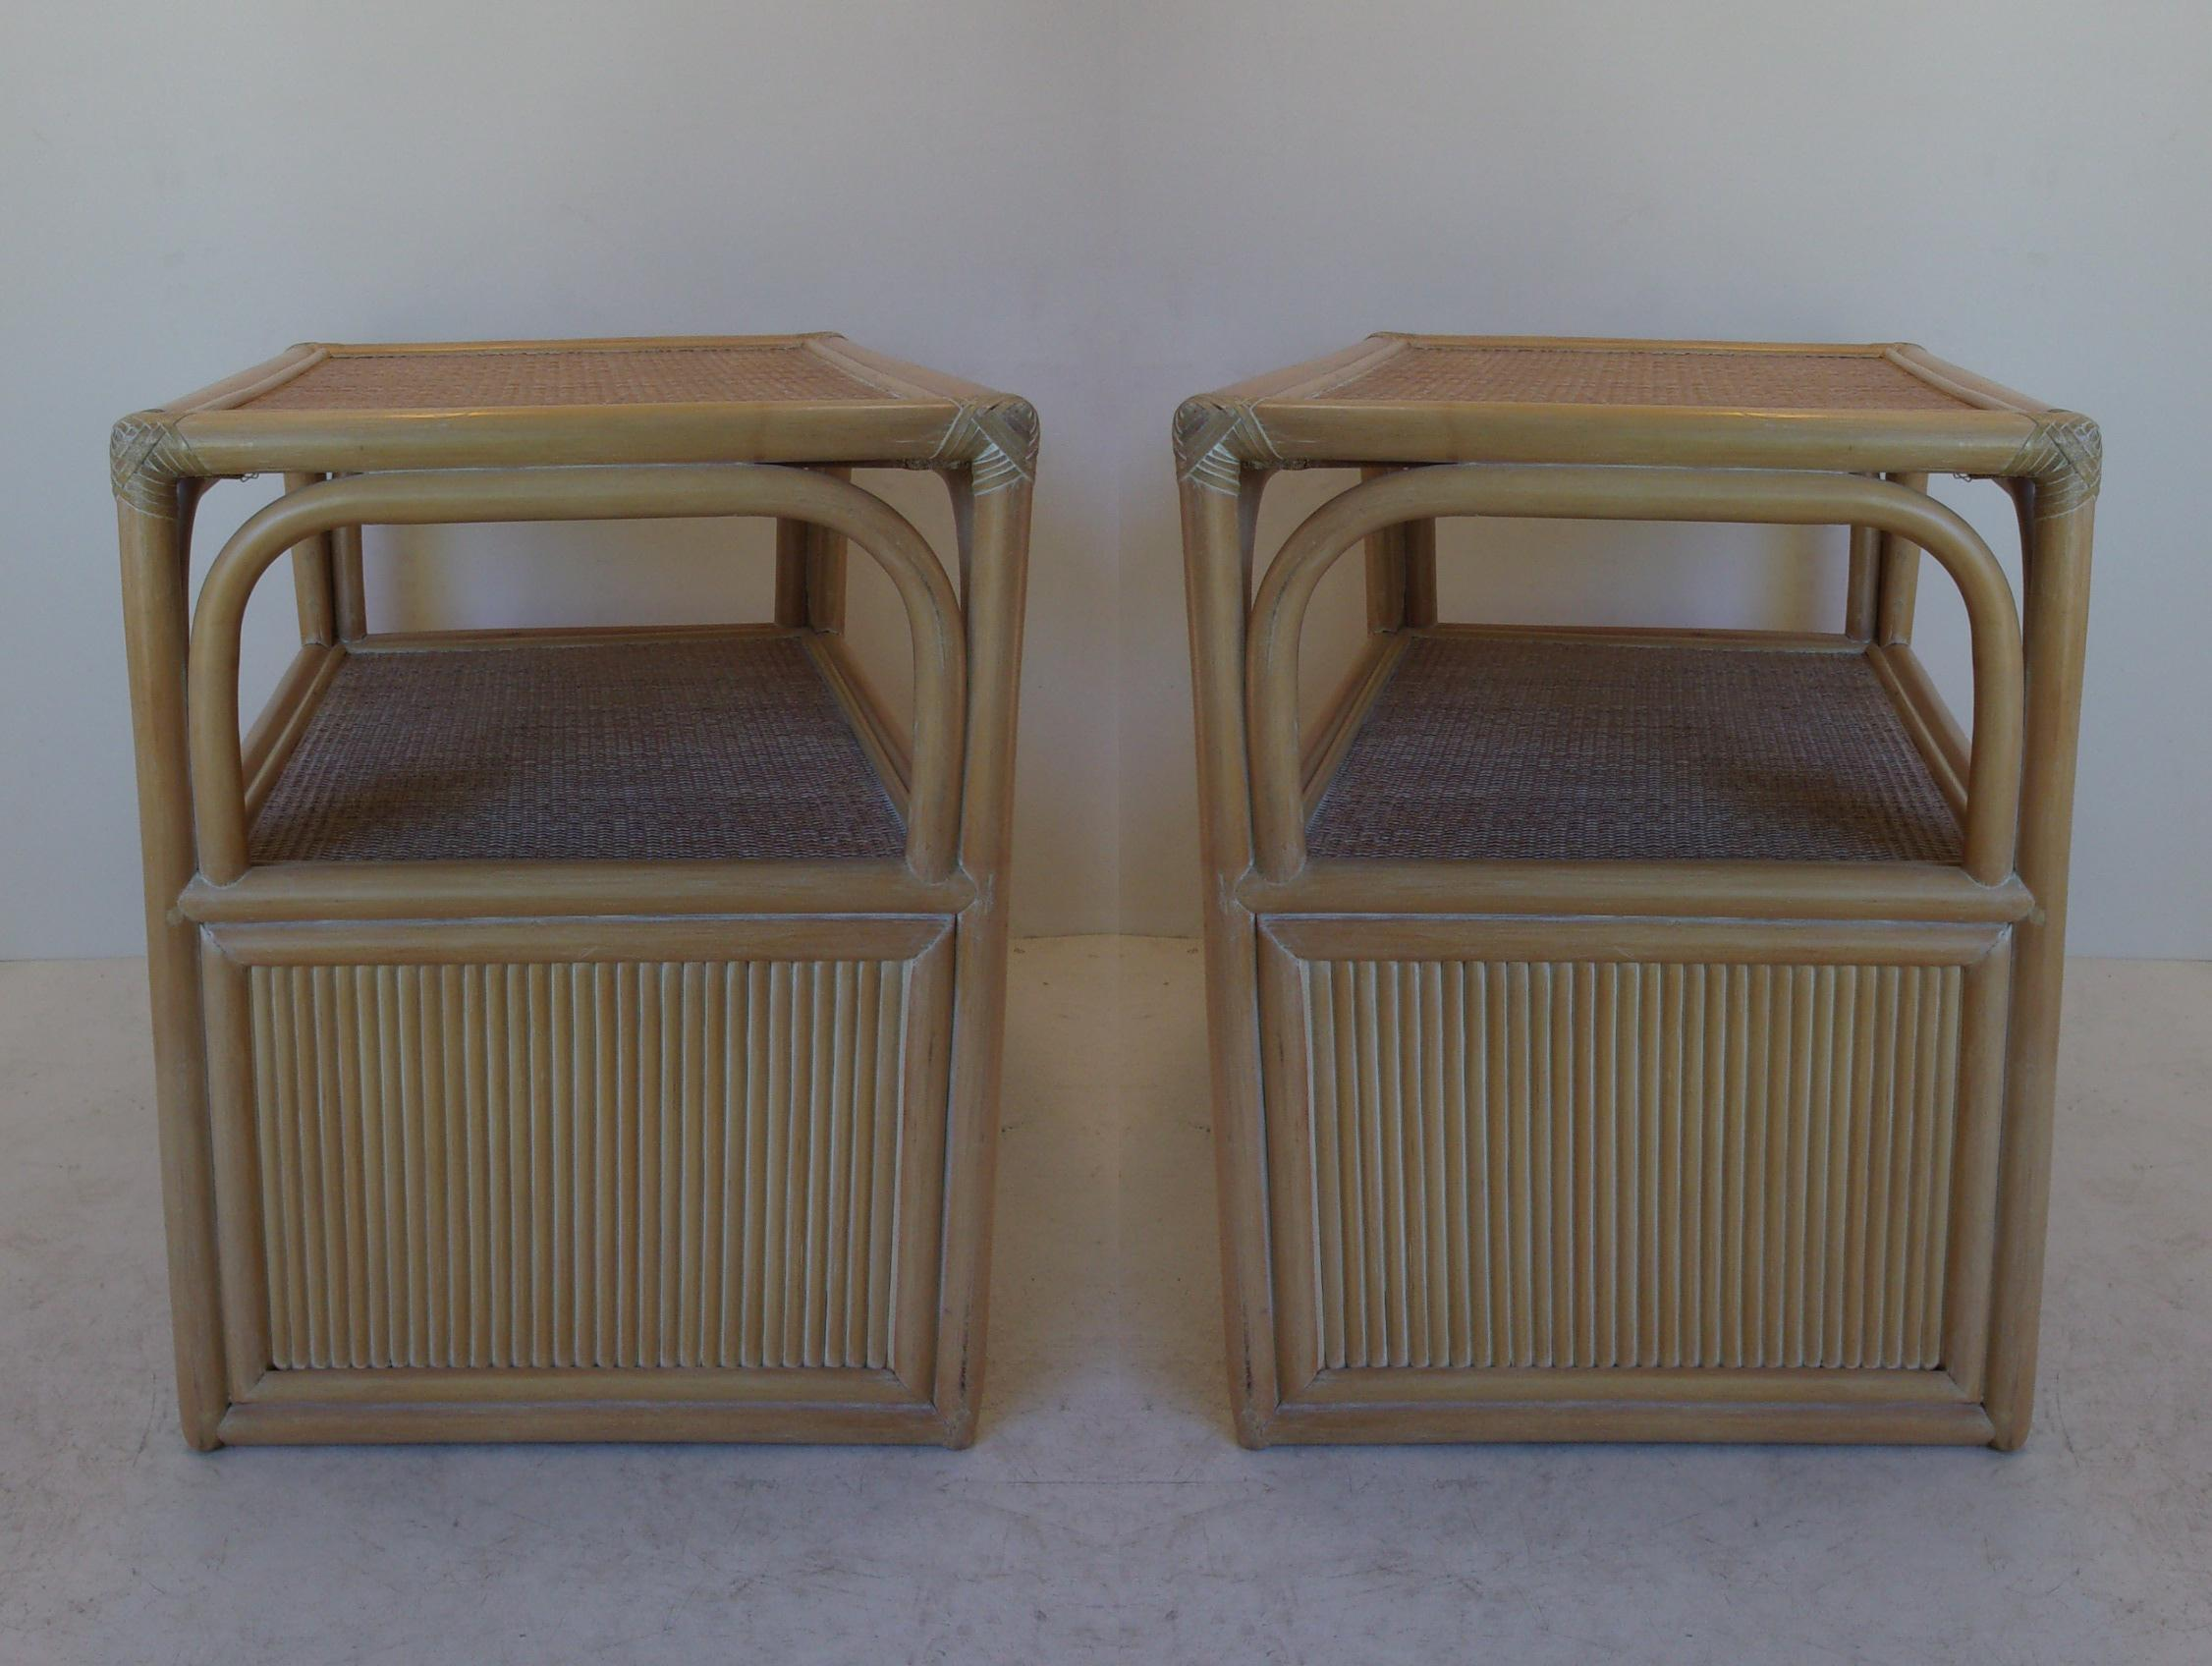 Vintage Palm Beach Style Side Tables Pair Chairish